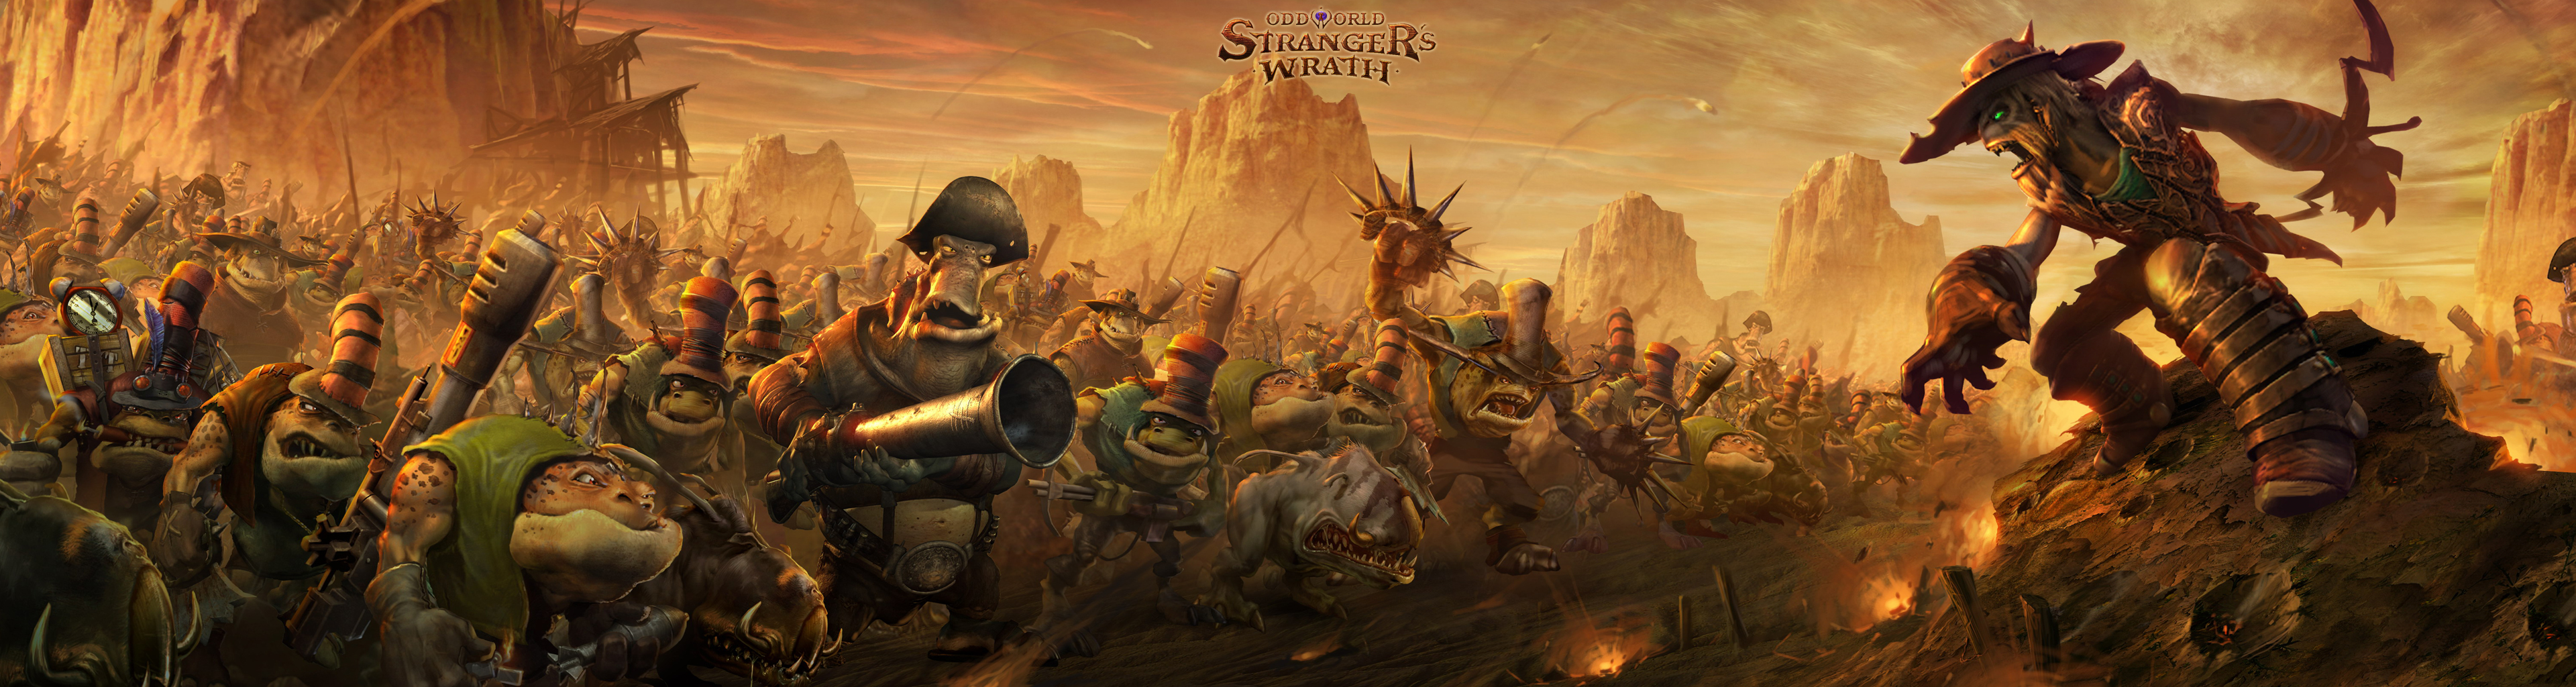 Fall Hunting Wallpaper Oddworld Stranger S Wrath Wallpaper And Background Image